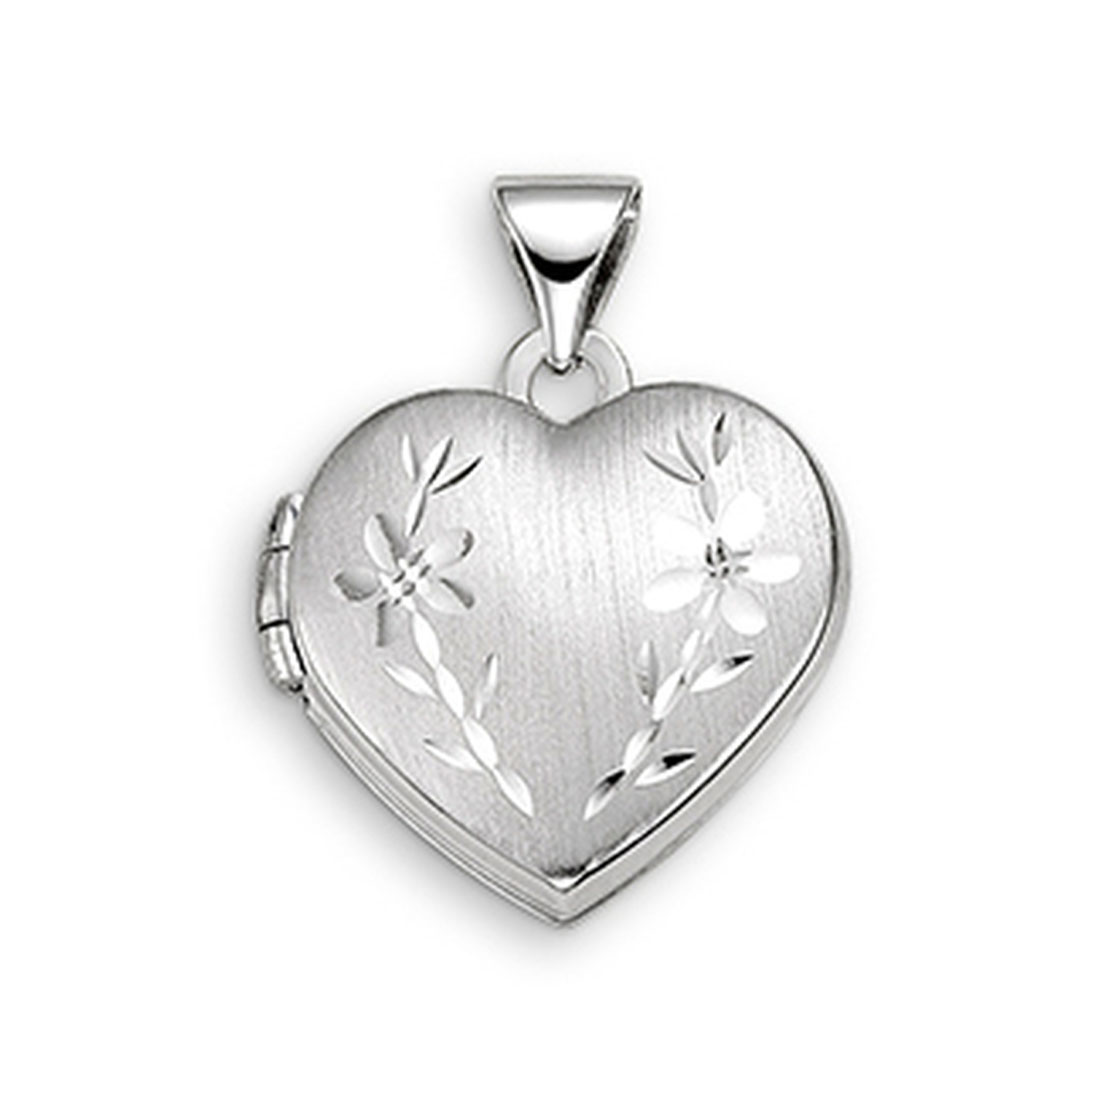 White Gold Locket with Engraving